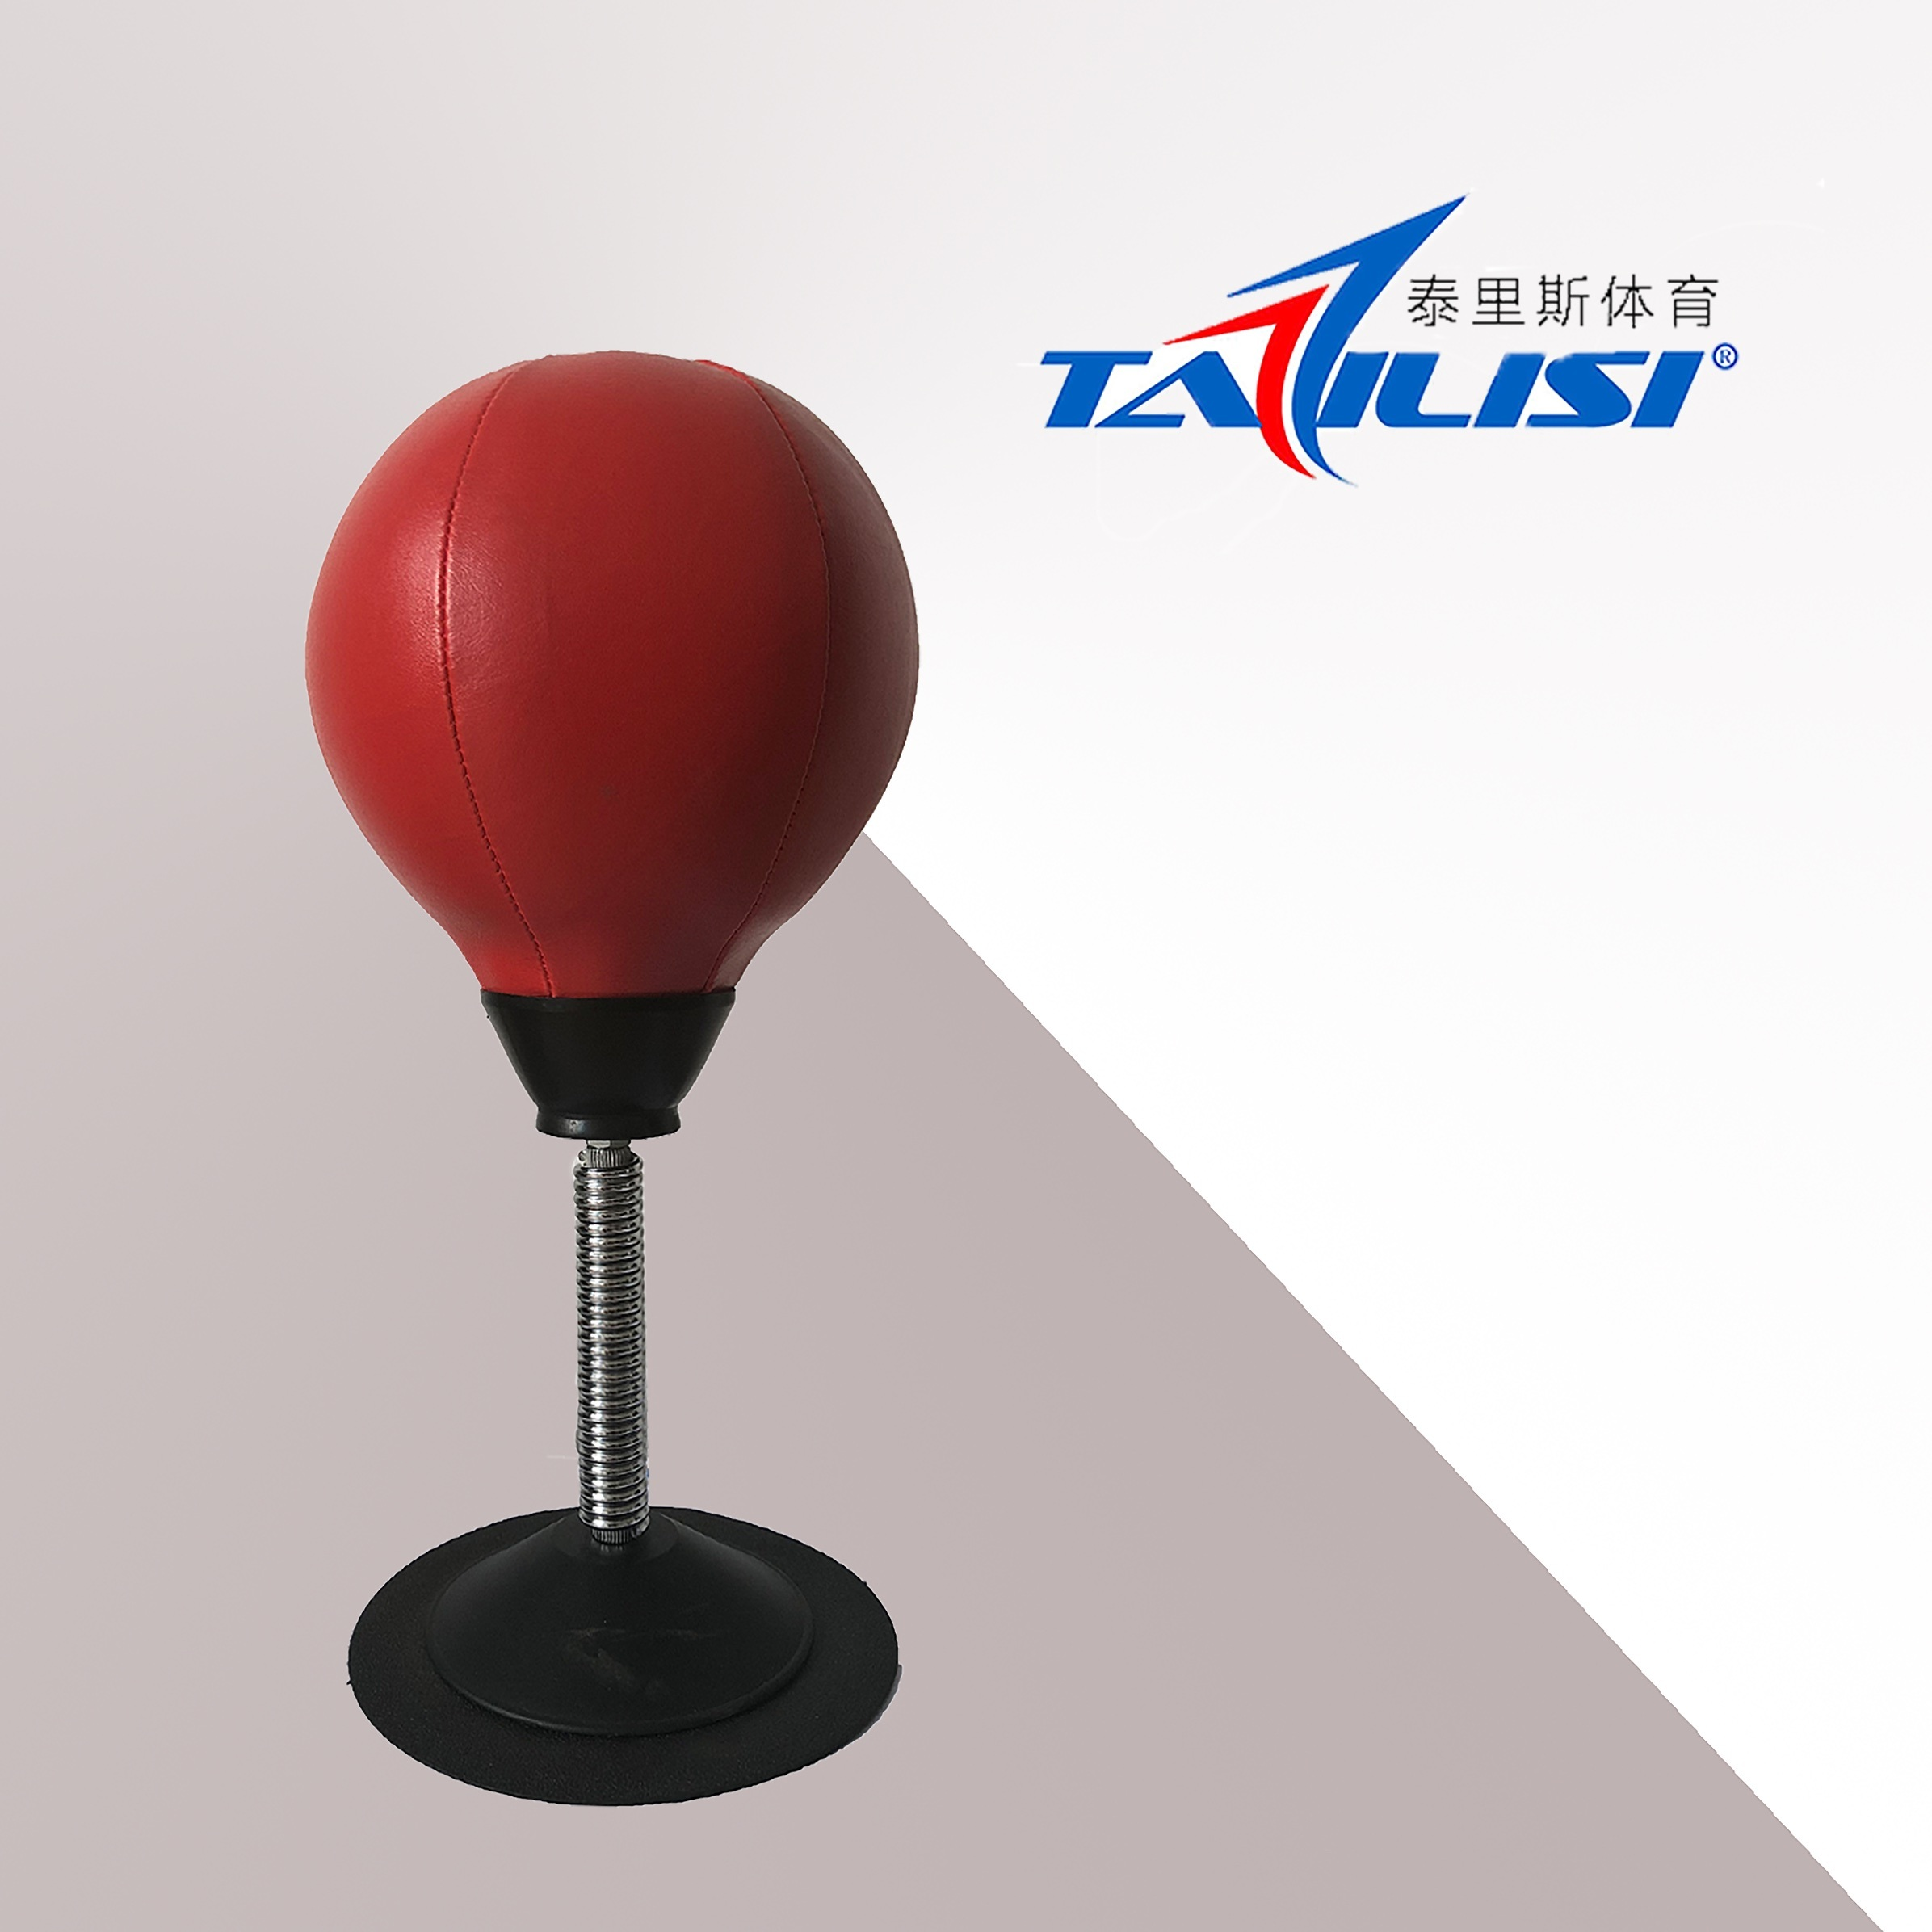 China Osculum Type Desk Punching Bag Item For Abreact In Office Boxing Sd Ball Table